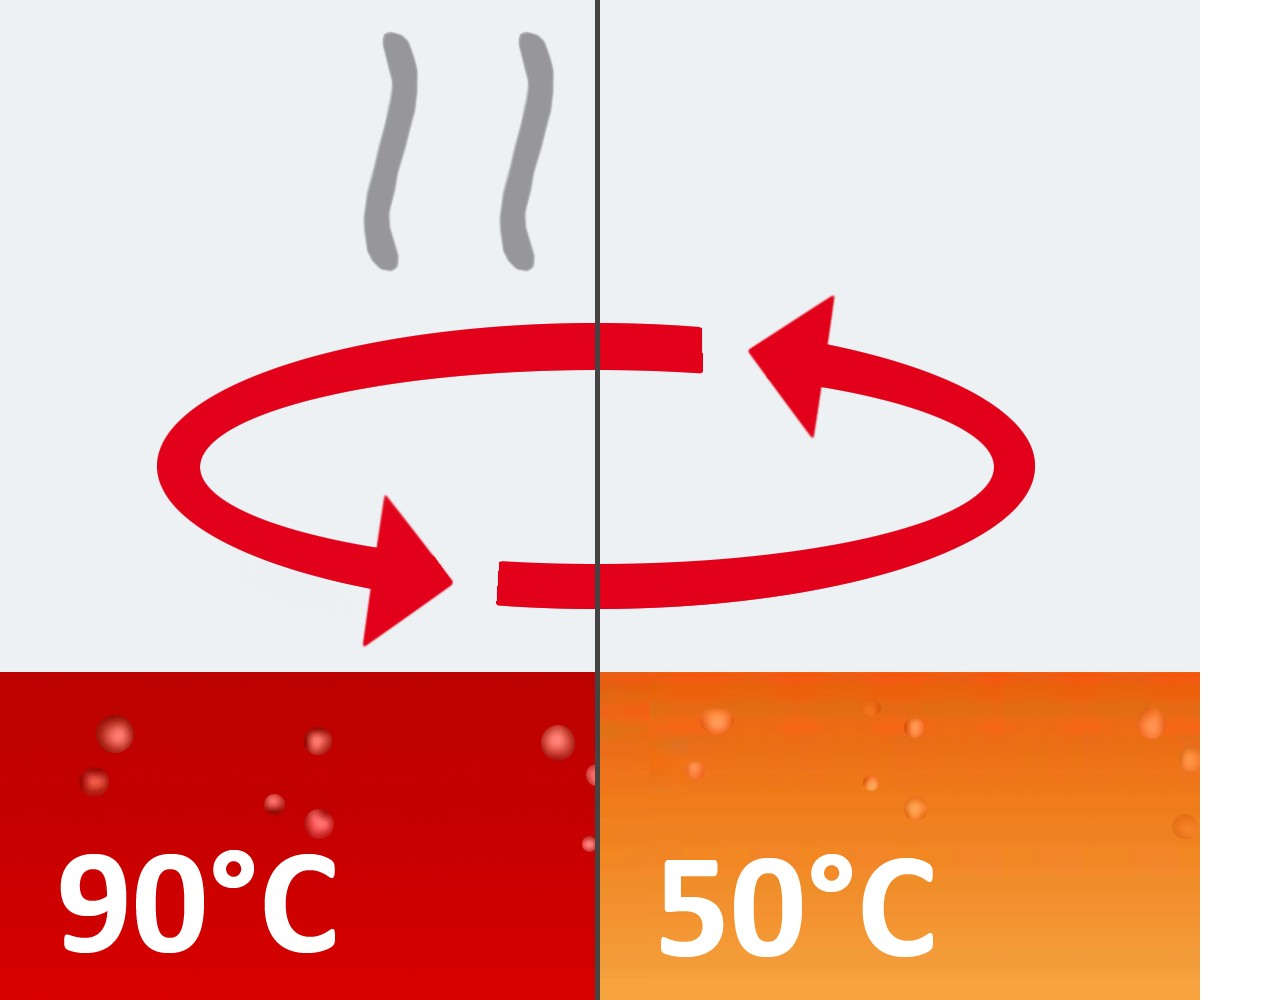 Red icon showing step 5 of the vacuum impregnation process where parts rinsed and cured